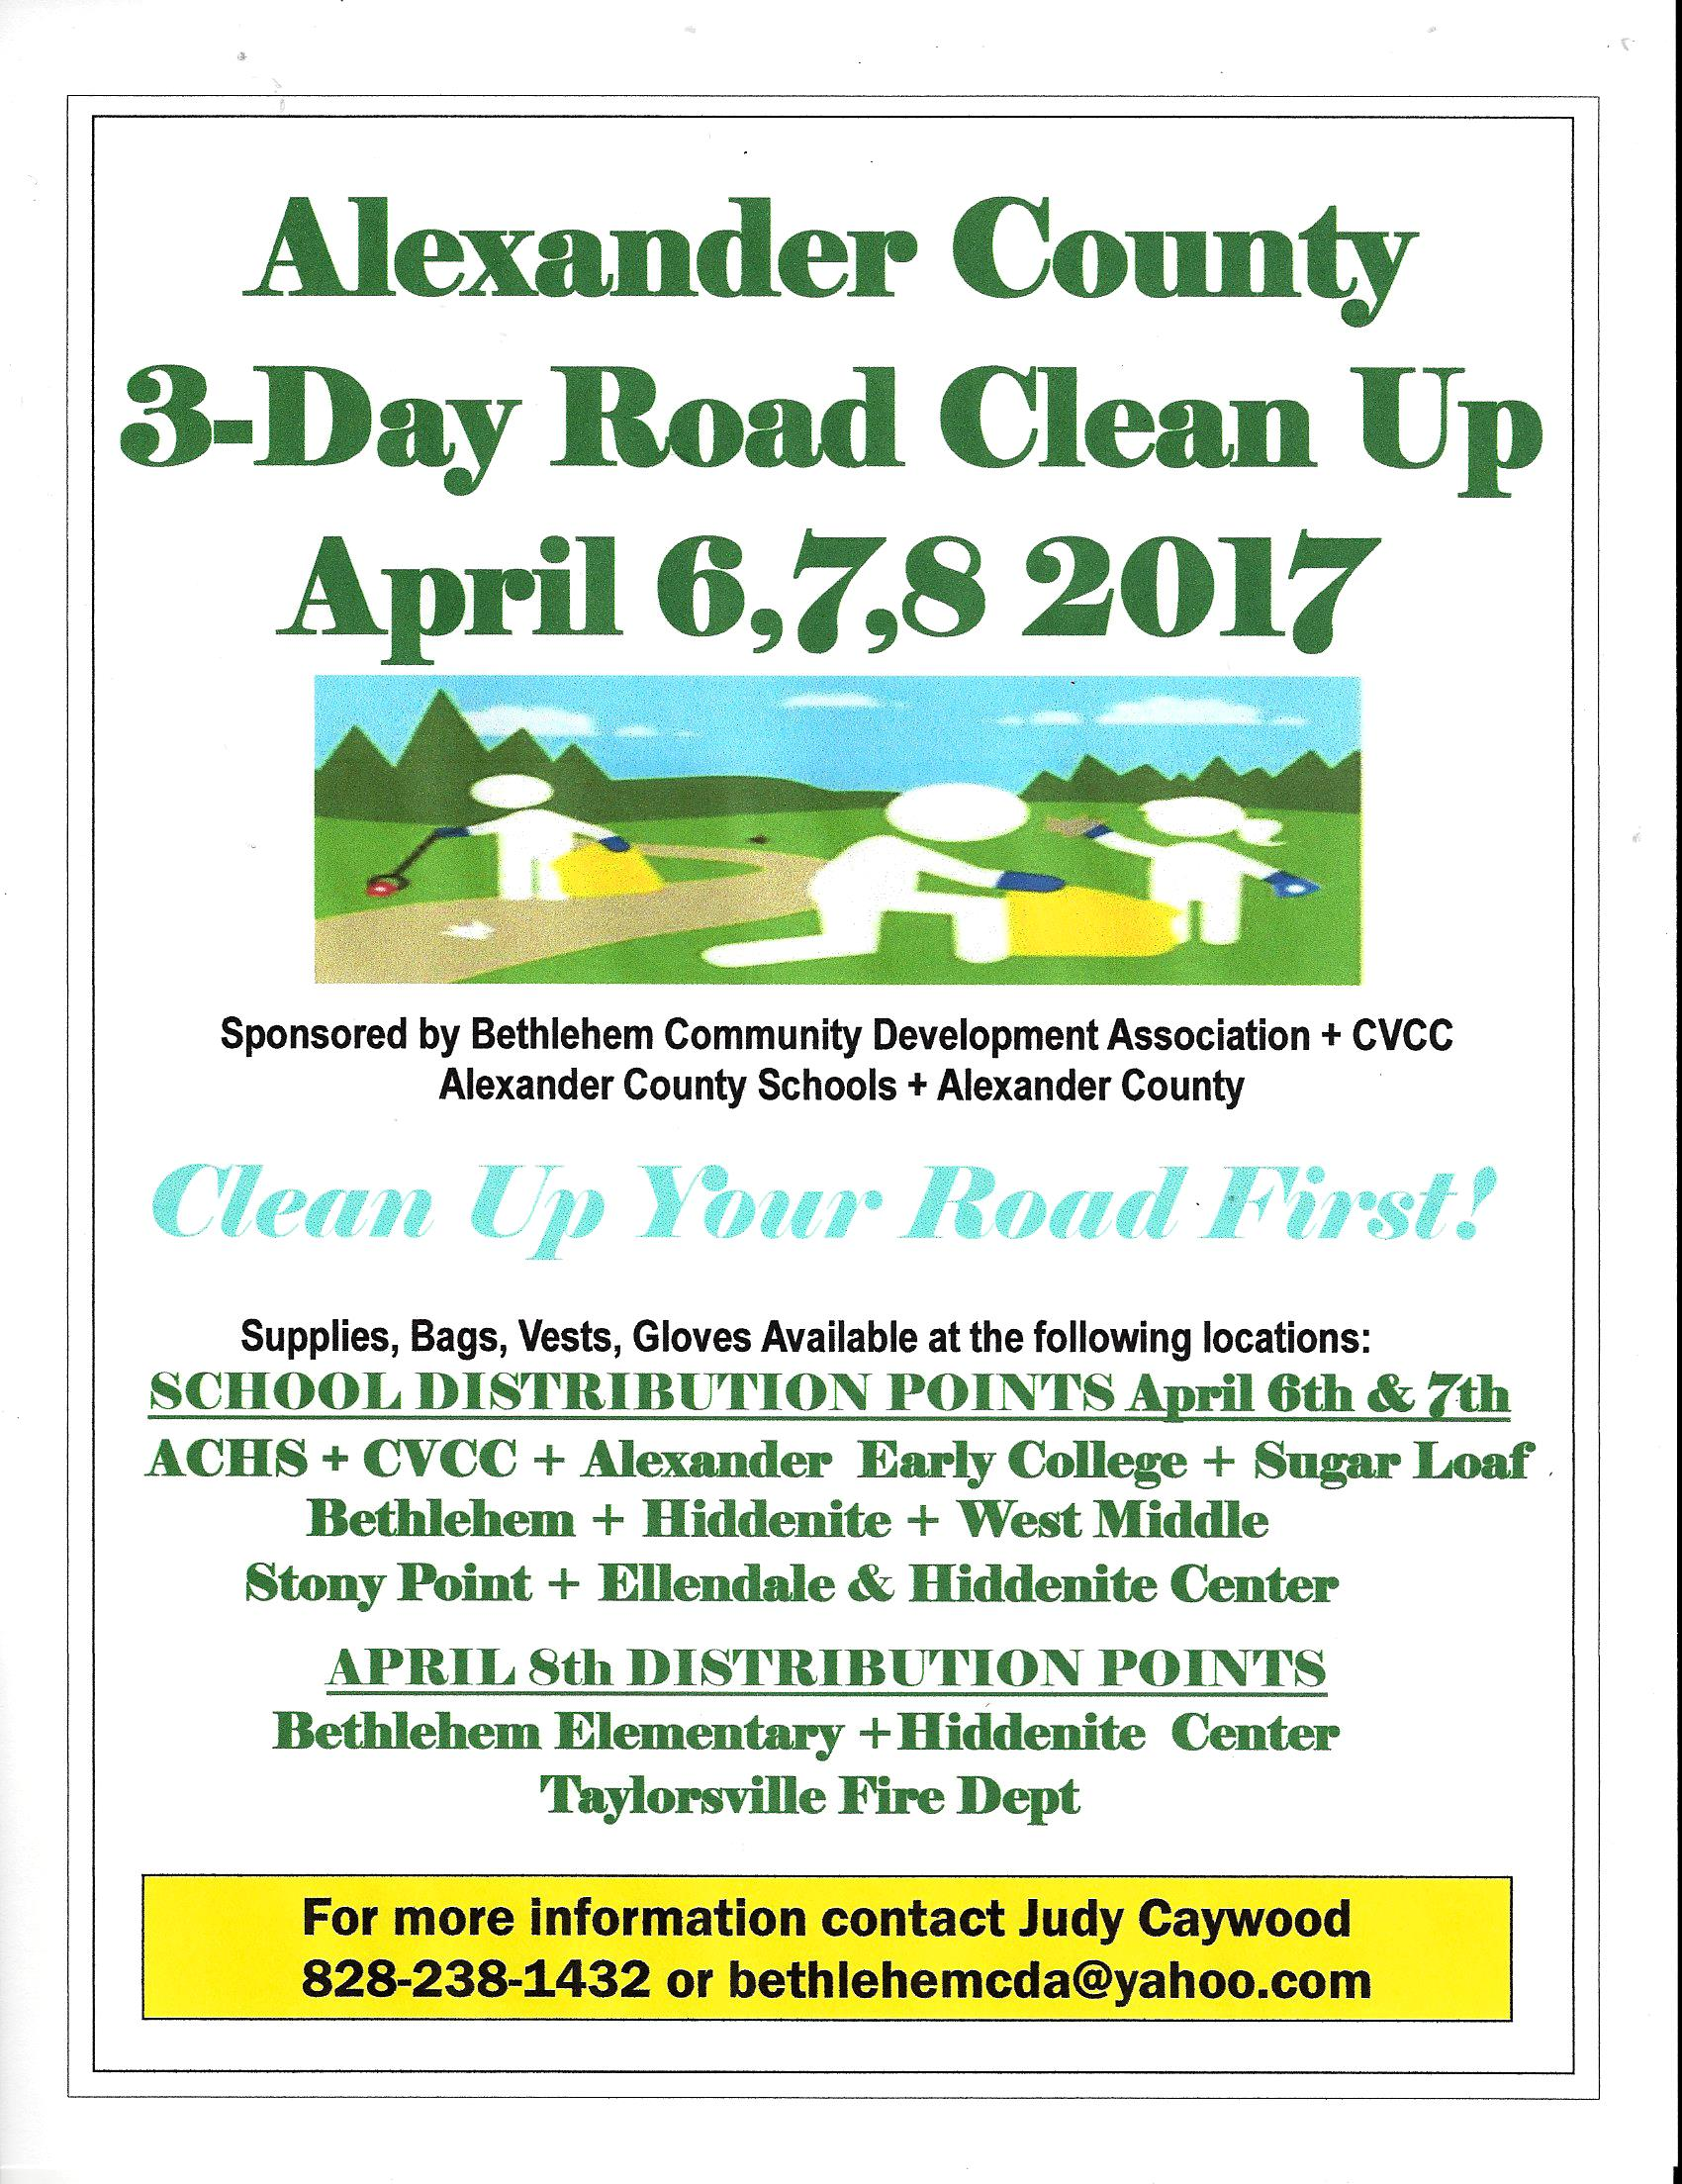 North carolina alexander county hiddenite -  Alexander County Roadside Cleanup Click Here For More Info